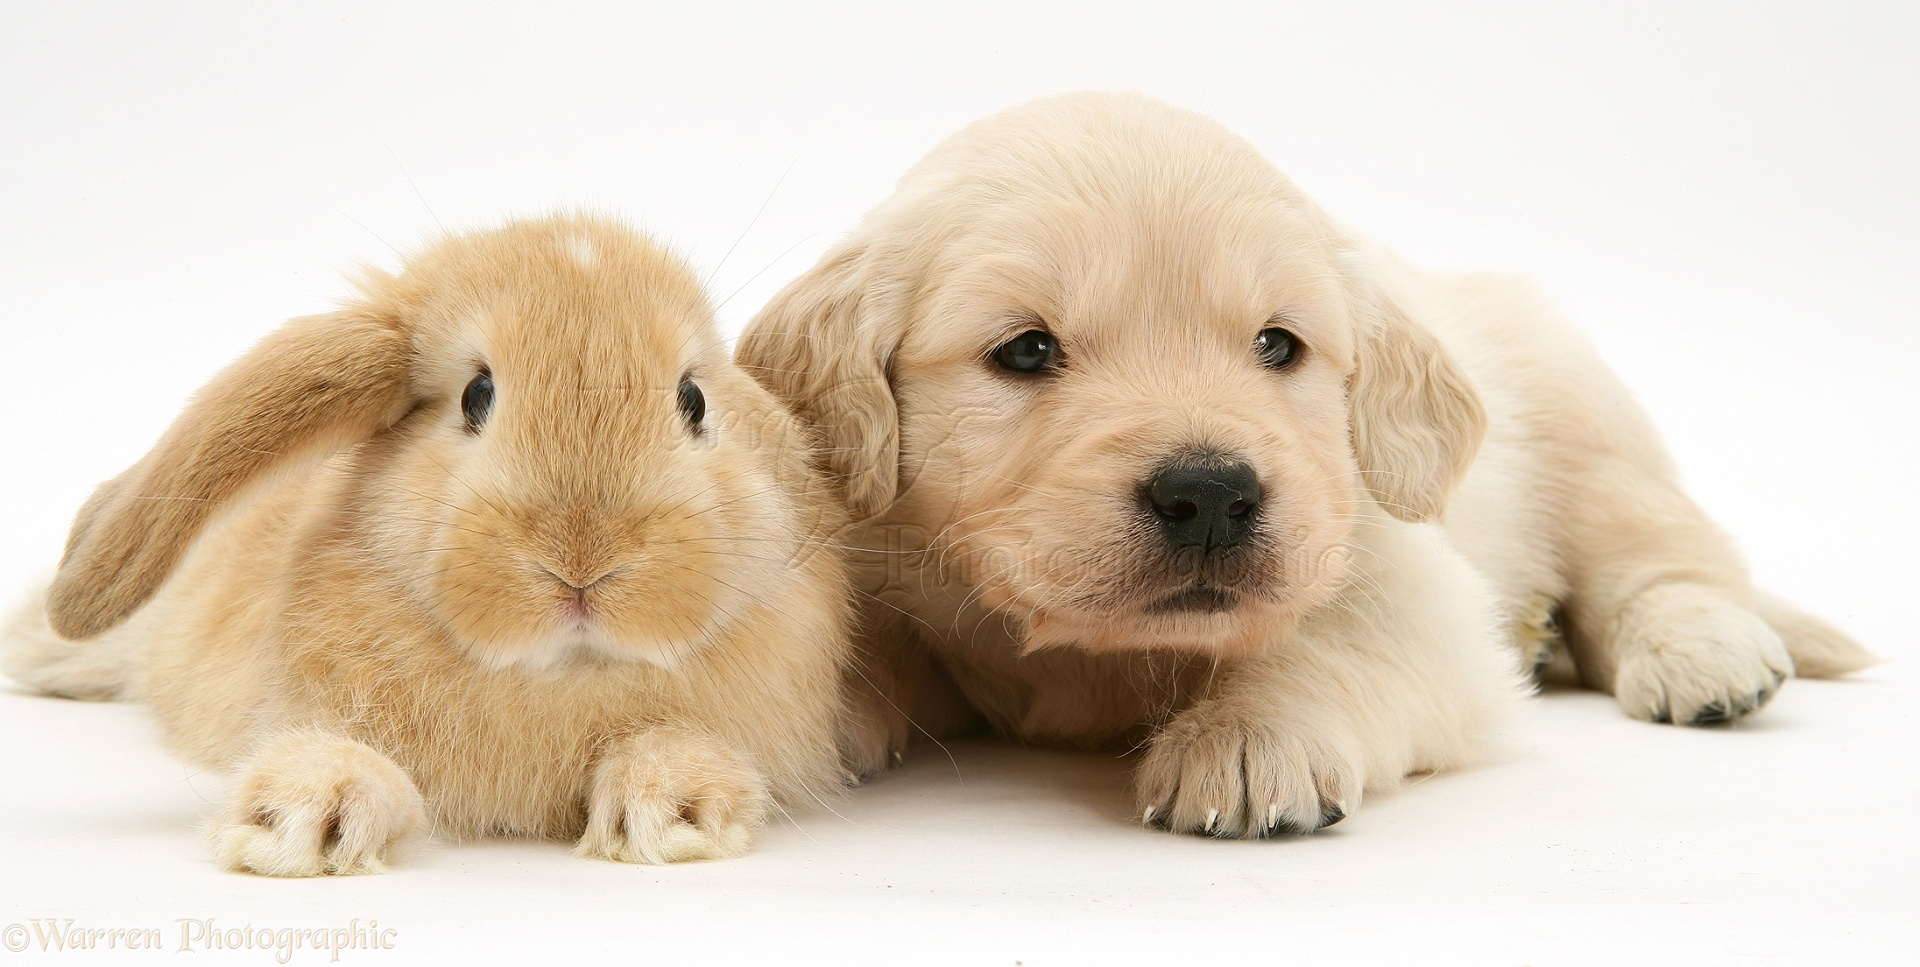 Pets: Baby sandy Lop rabbit with Golden Retriever pup ...